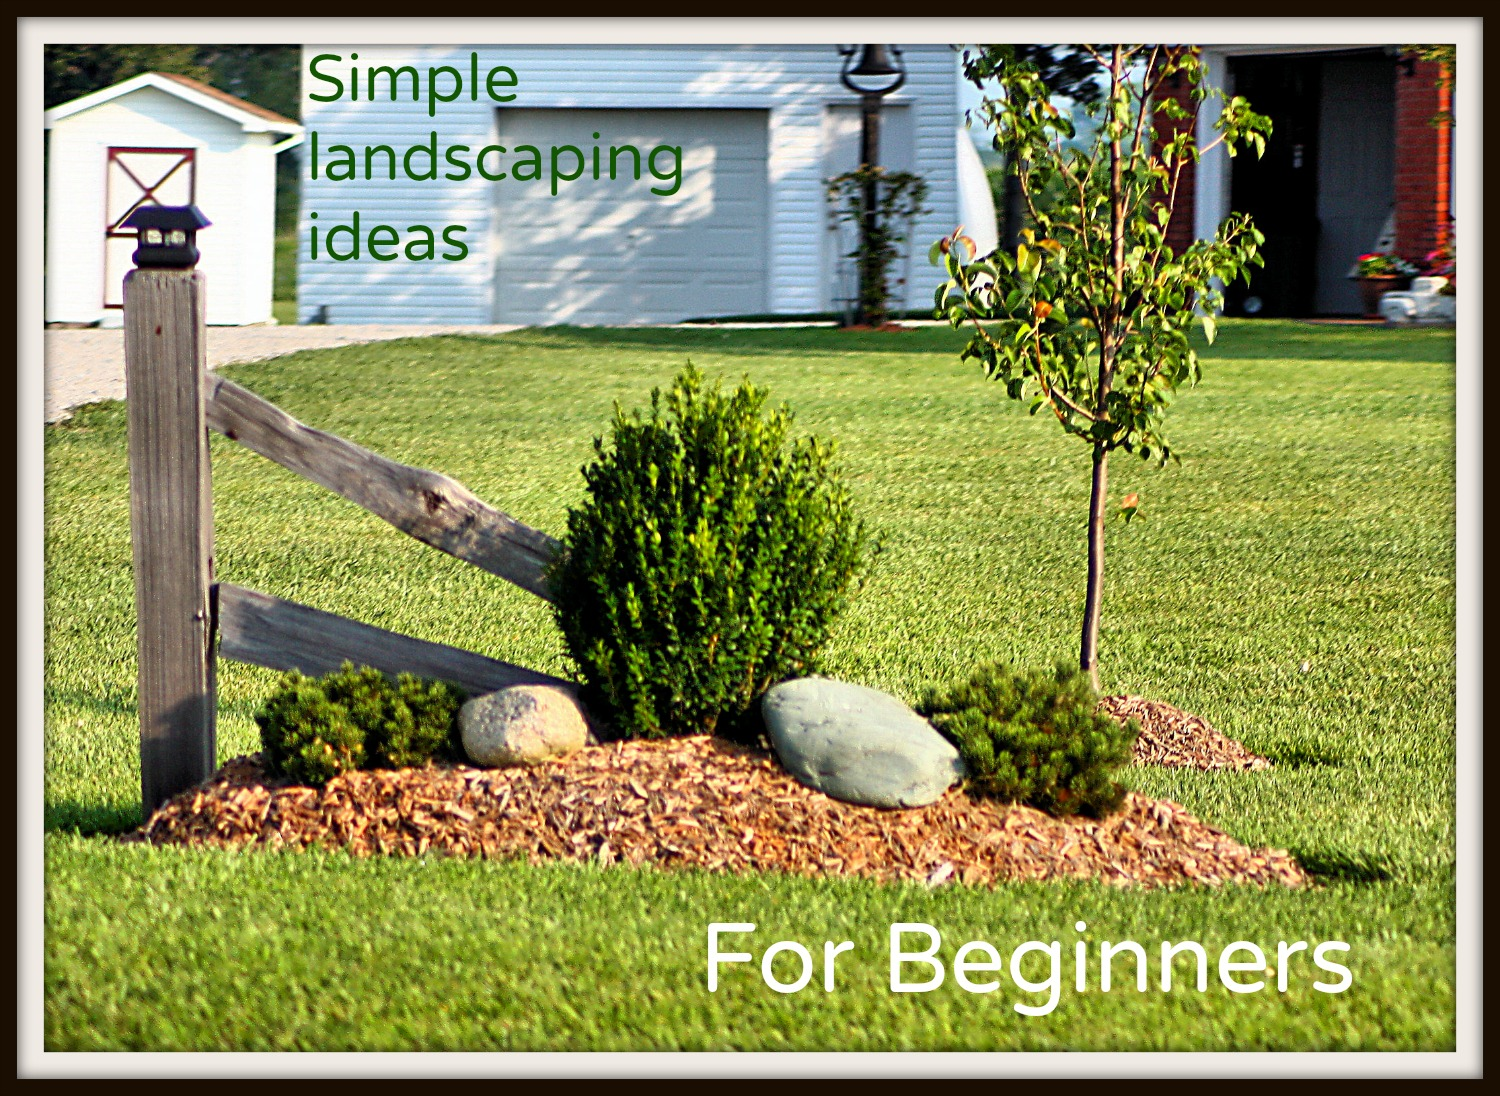 Simple landscaping ideas for beginners frador for Landscaping options